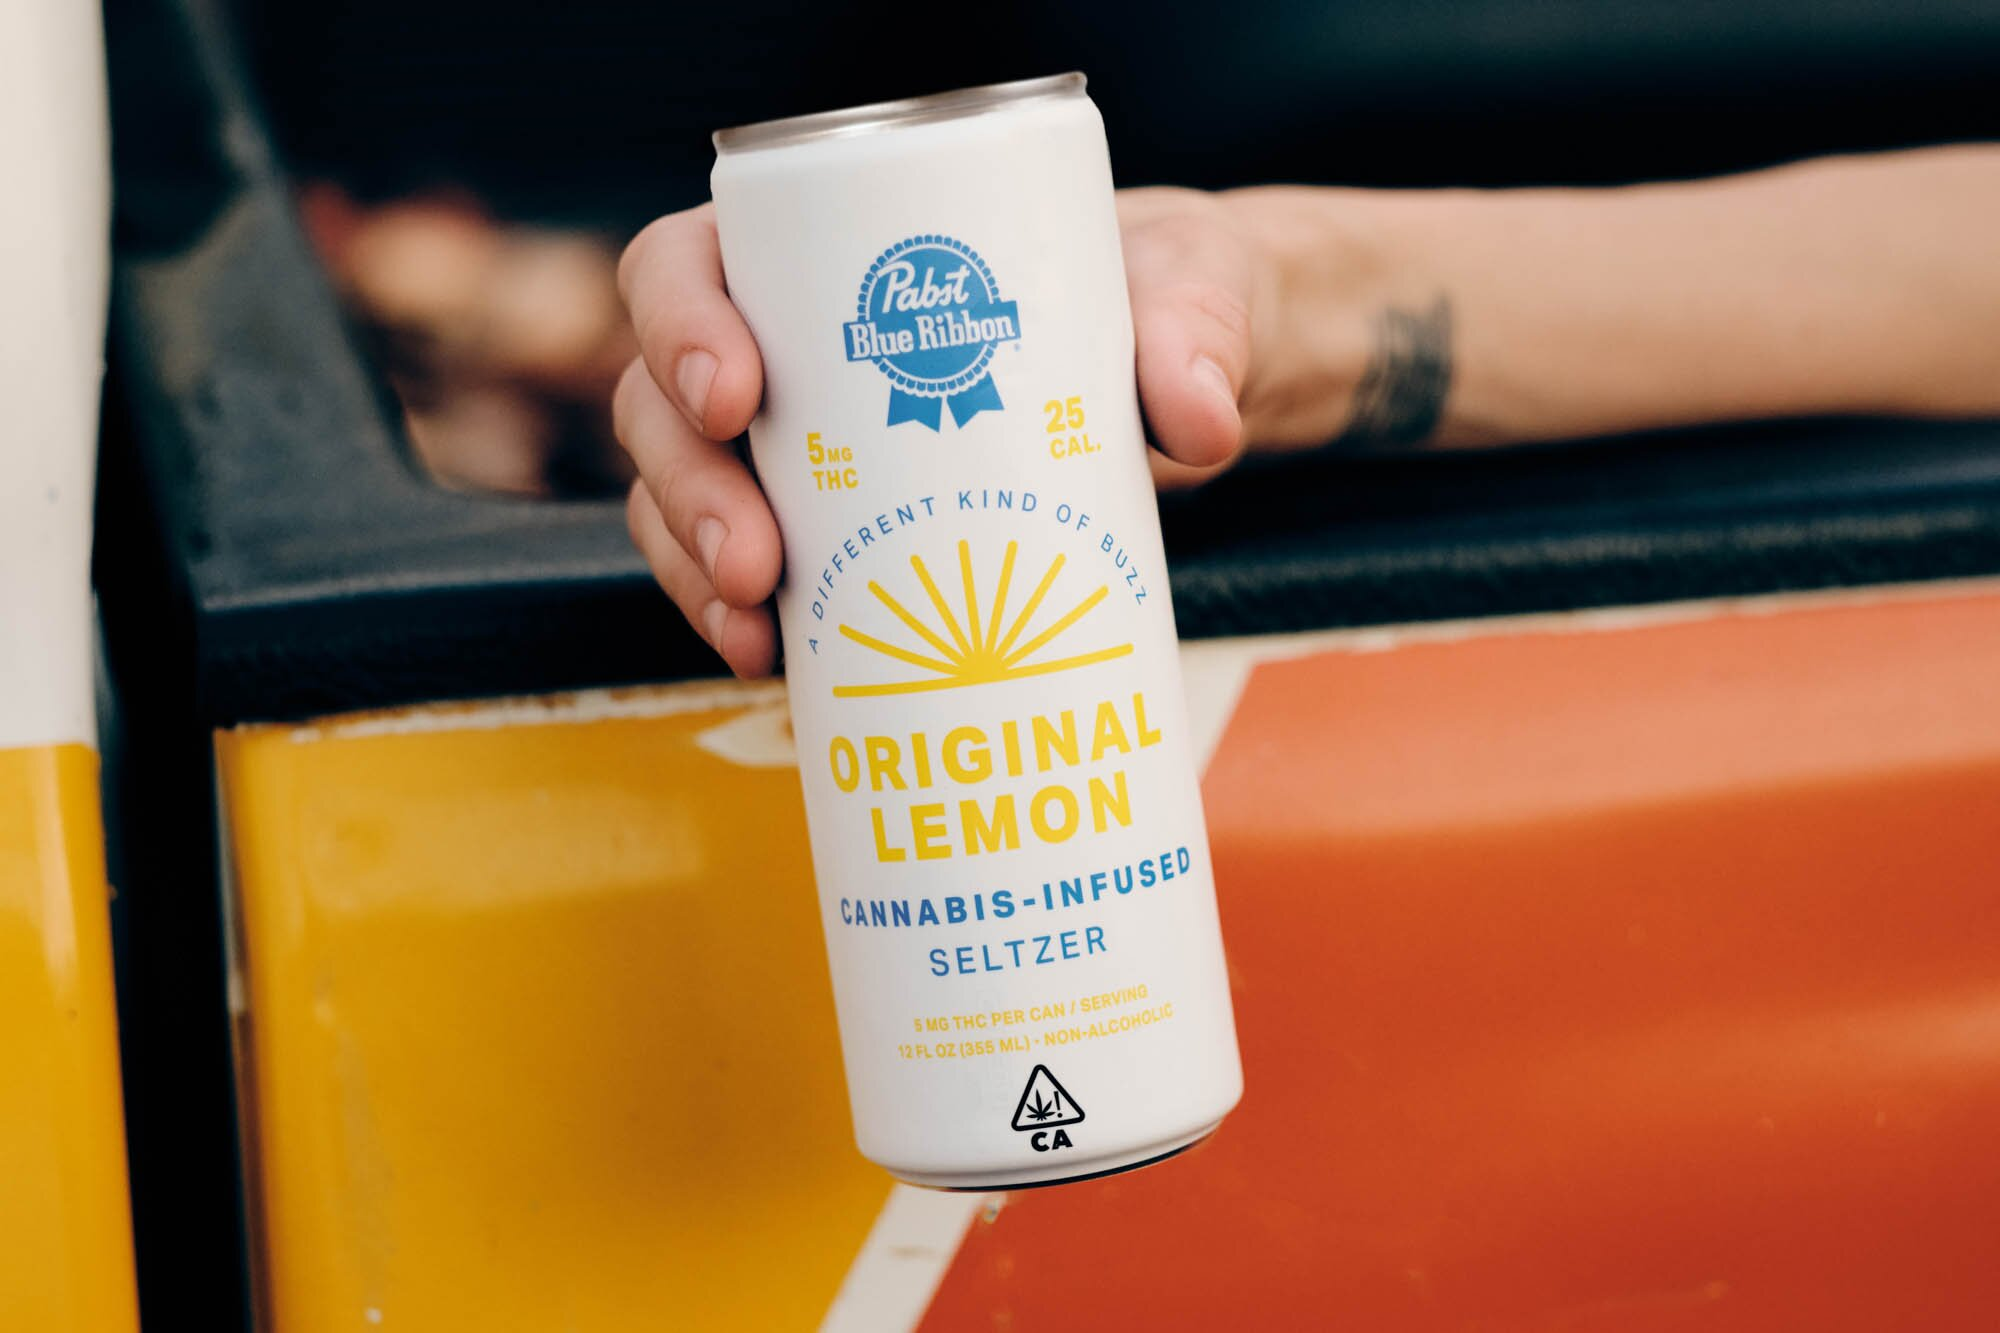 Pabst Cannabis-Infused Seltzer